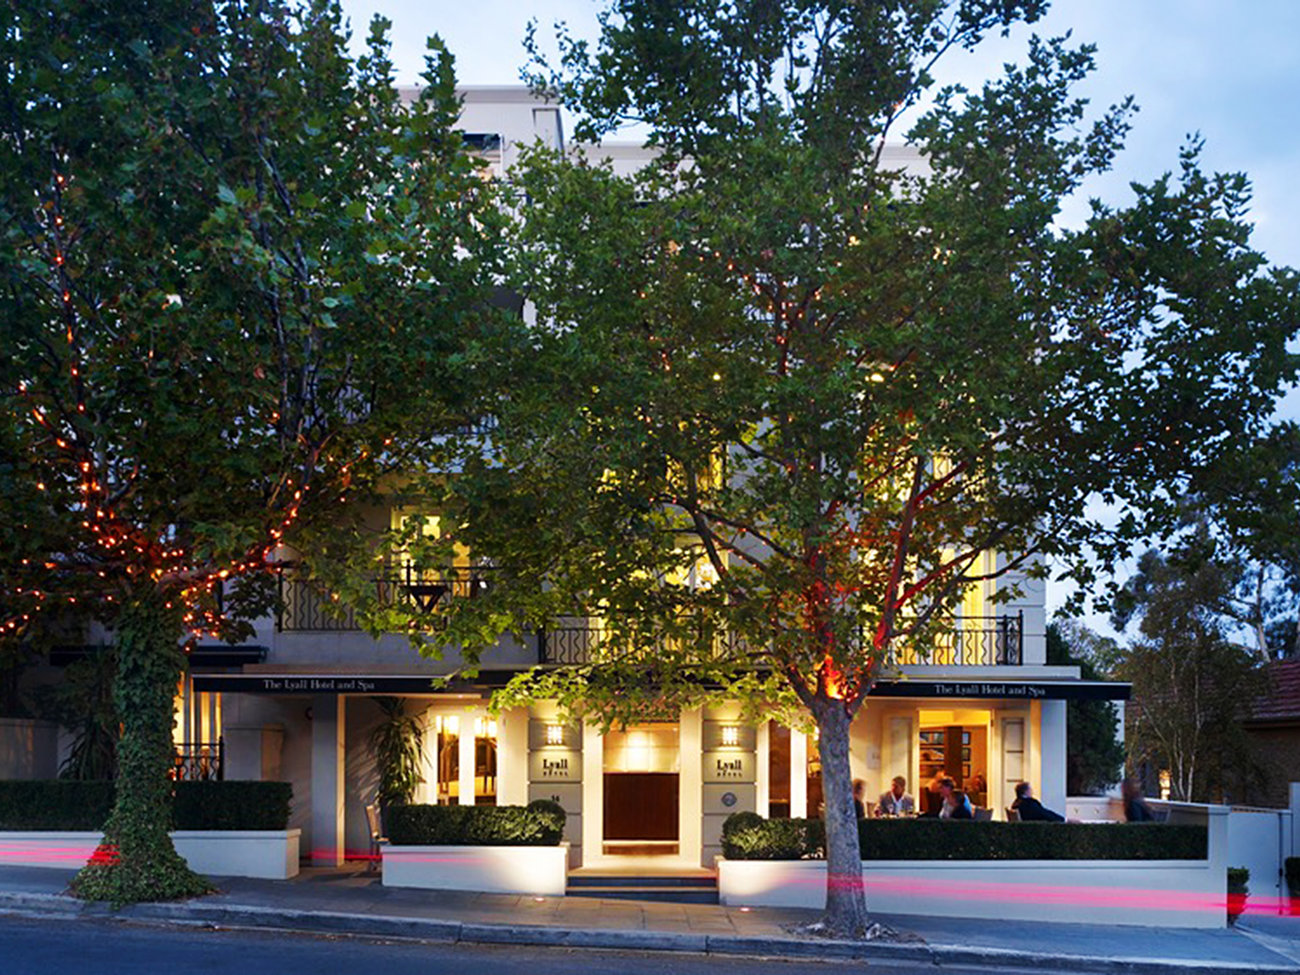 Lyall Hotel & Spa in Melbourne